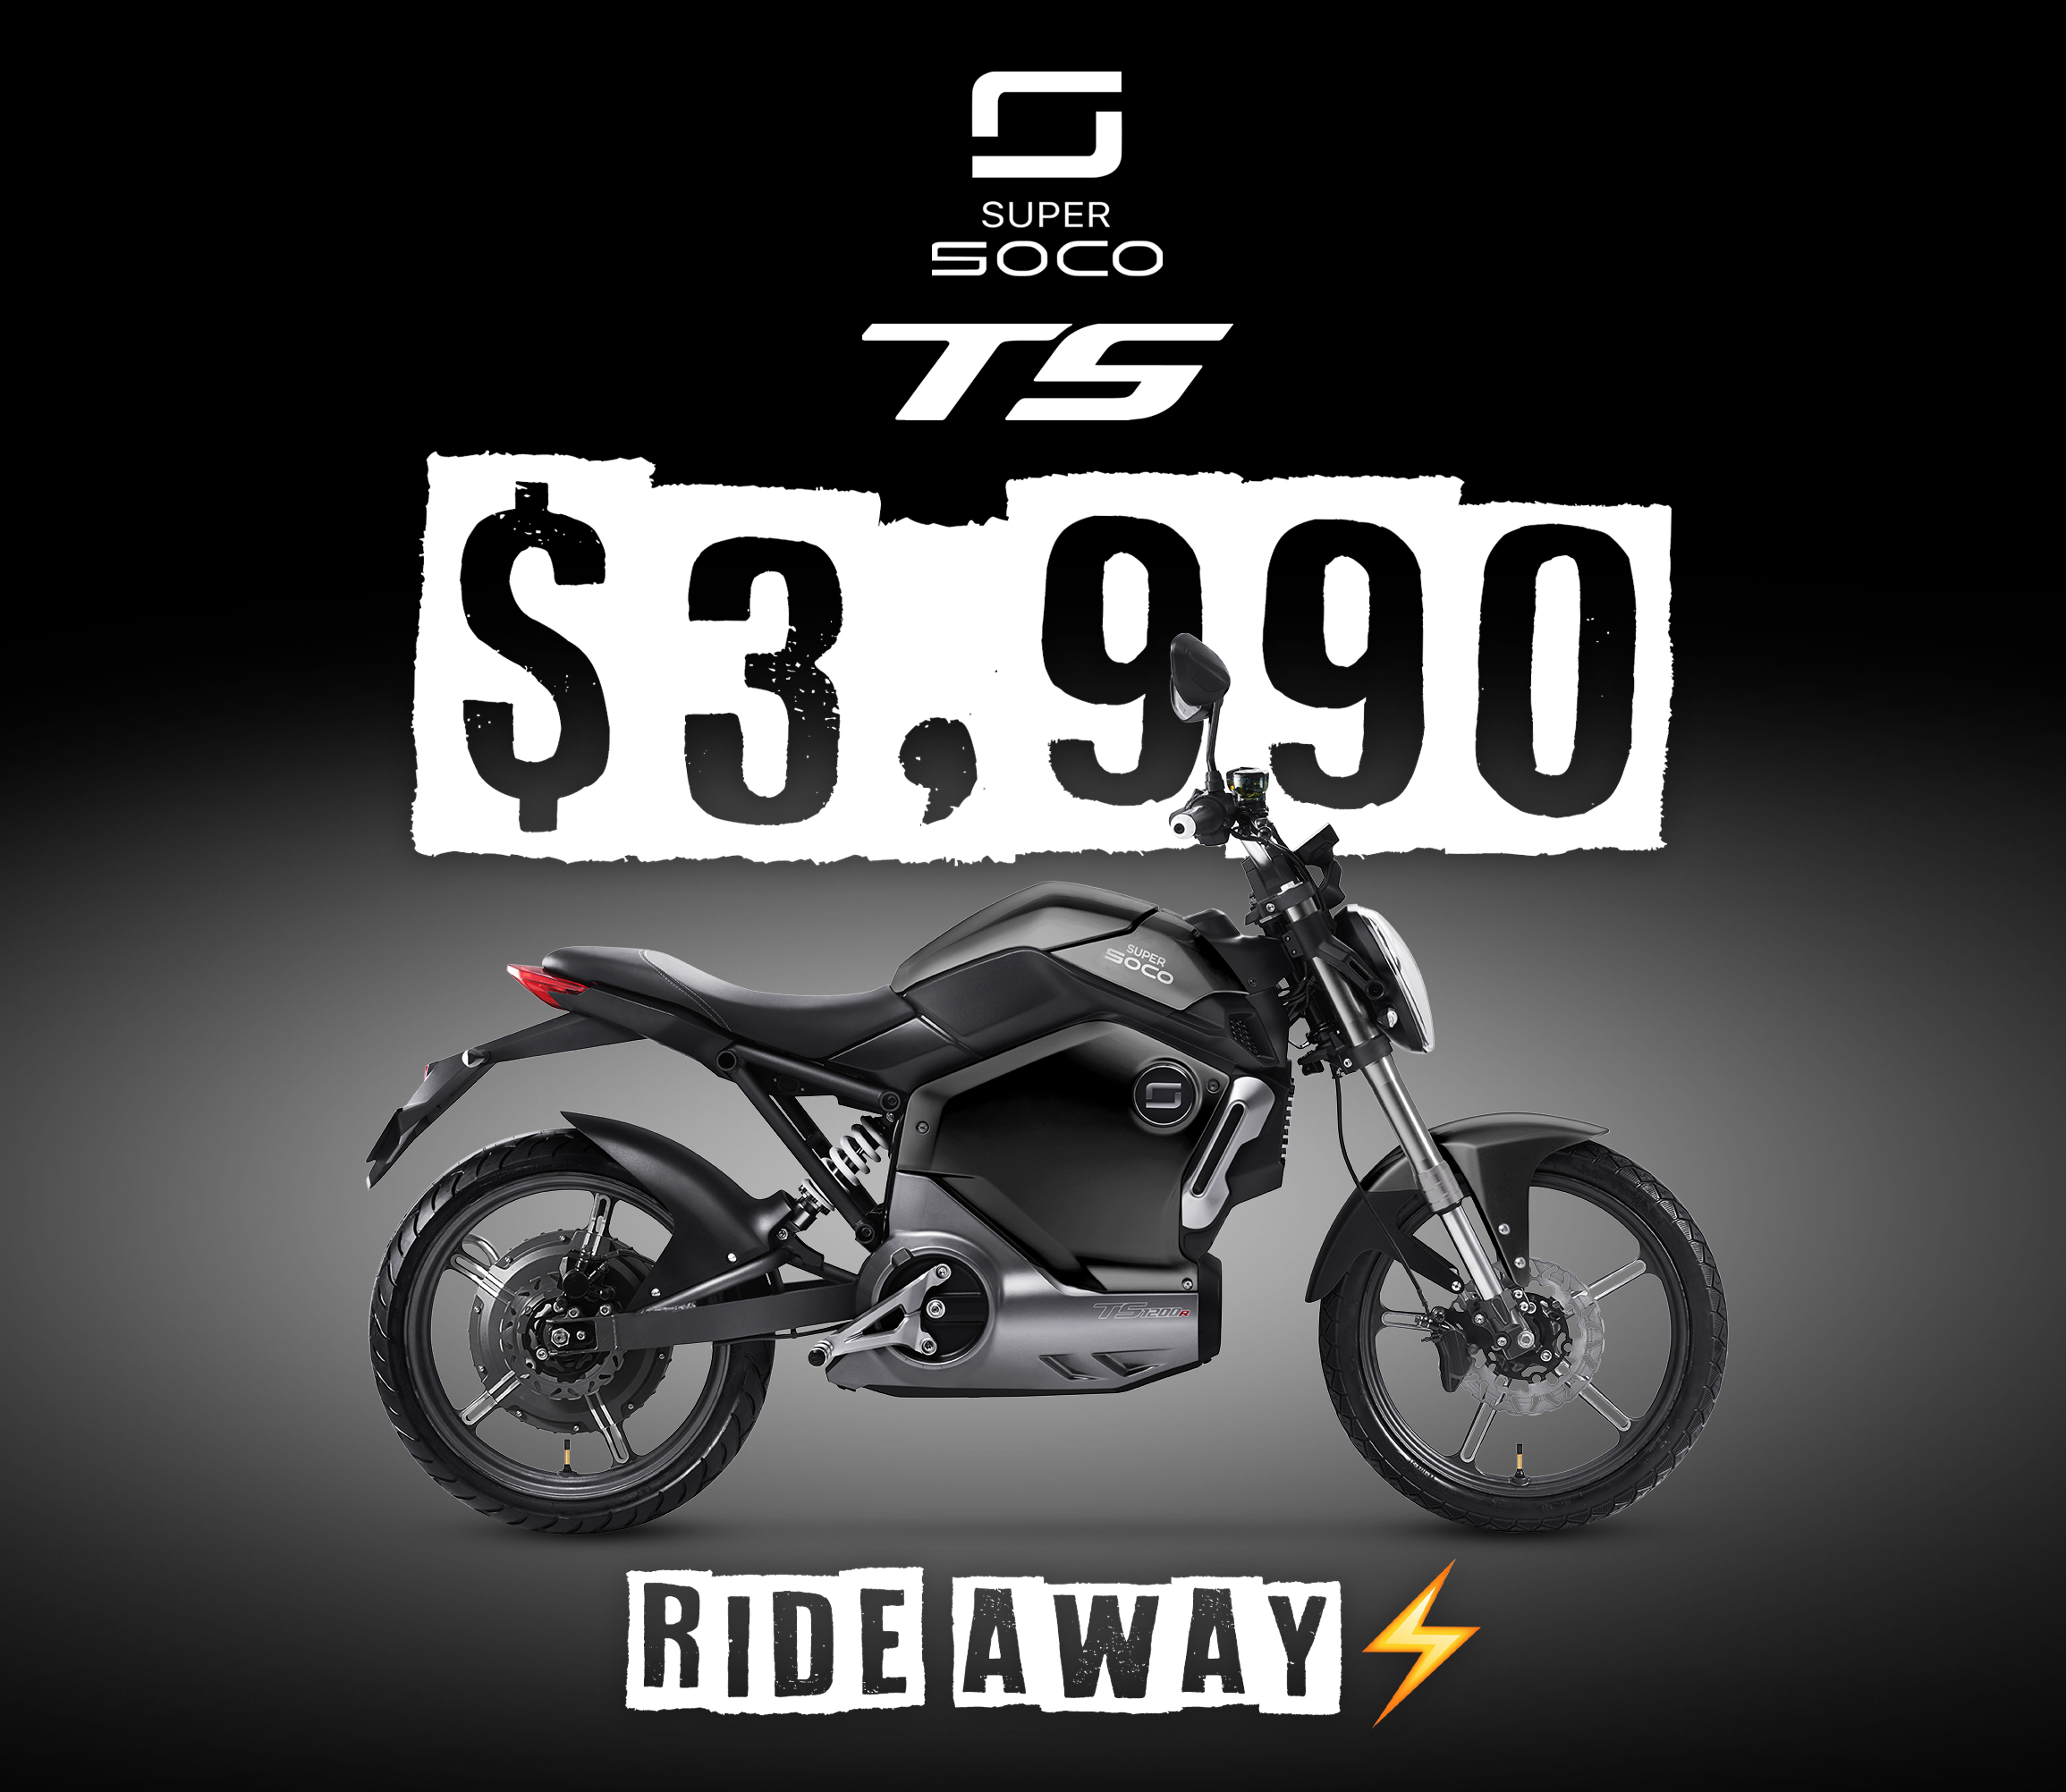 Super Soco TS - $3,990 Ride away! Ride electric for $3,990 ride away.